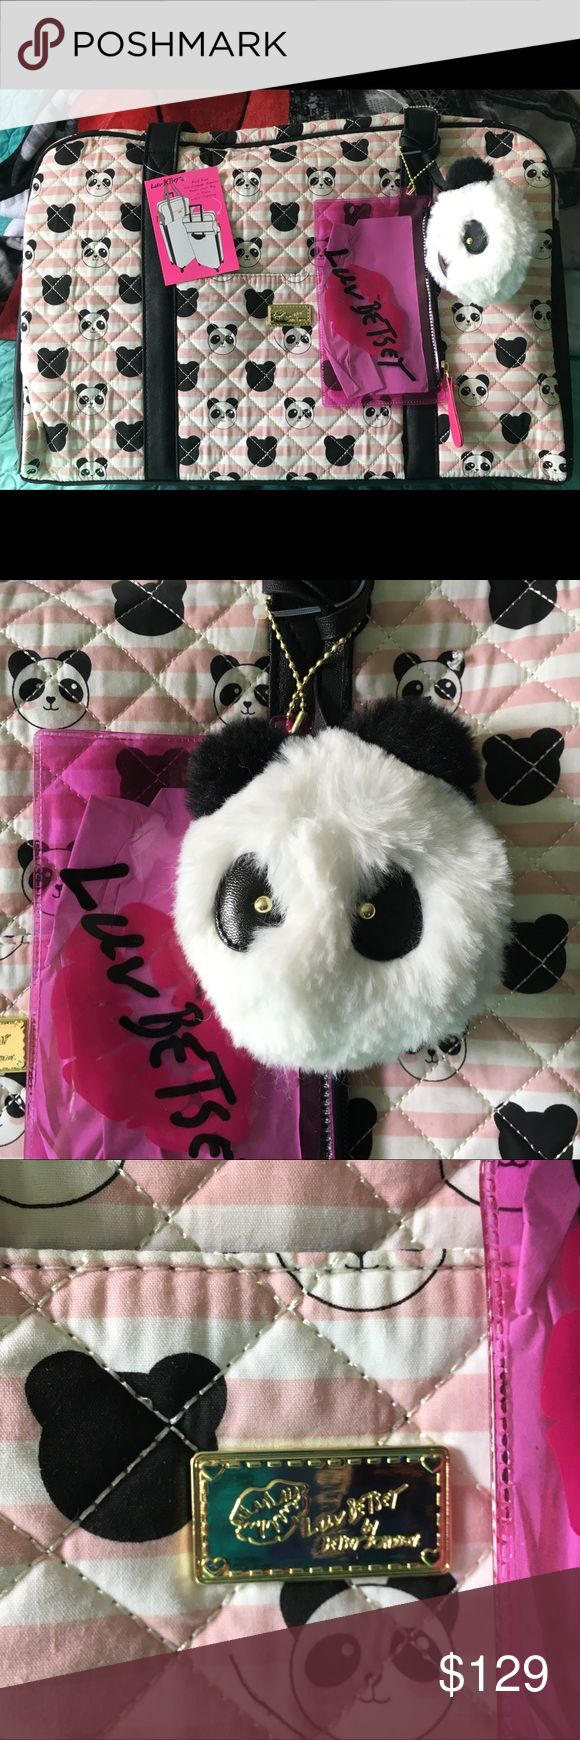 ❤️💚 BETSEY JOHNSON Travel Bag NWTS Betsey Johnson Carry On Travel Bag. In the adorable Panda Style. It has a ton of room for all your necessities. There are pockets on the inside. A pink bag that will hold items attached to the outside. Also has a sweet PANDA Bag Tag. Pretty Pink and black colors. There are straps for easy handling and cross body straps as well. This is perfect for a weekend getaway or an overnight trip. Also as a carry on for a flight. Will be a great gift for a Betsey bag…